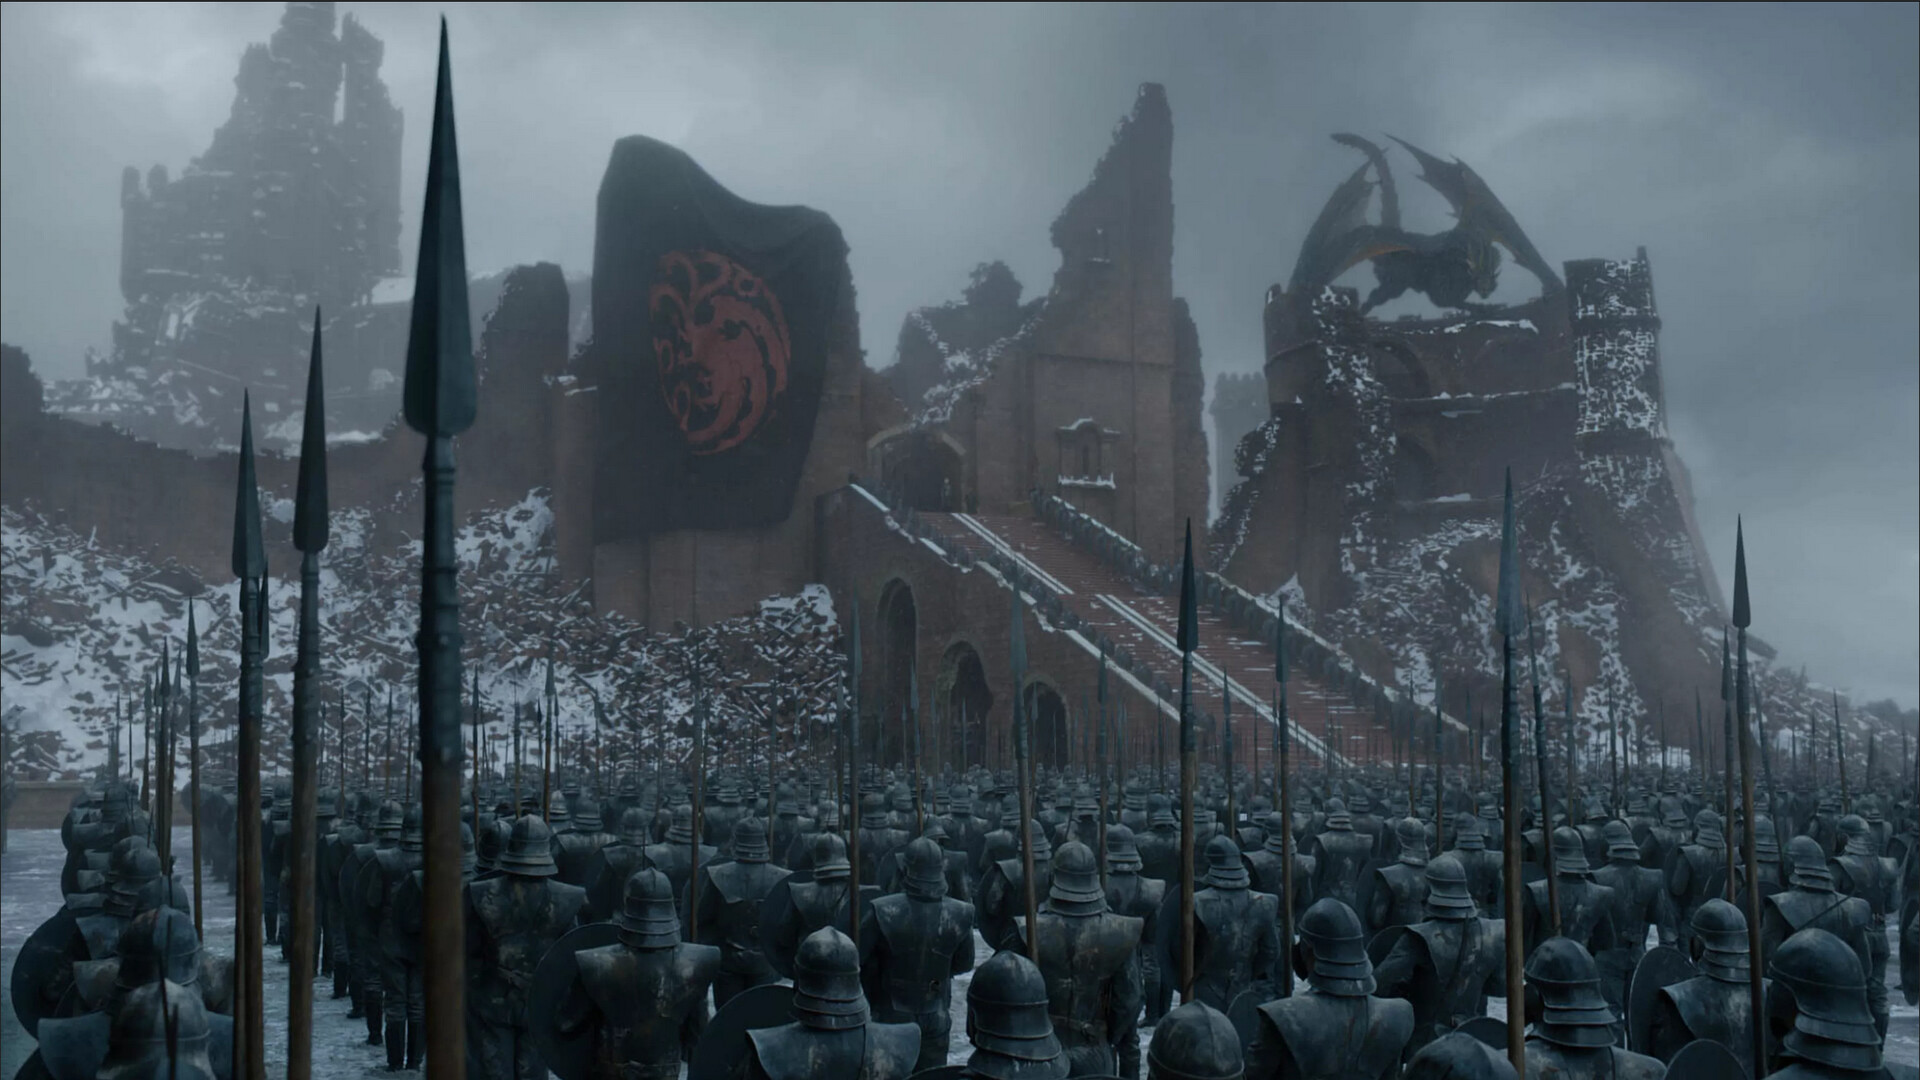 How the Ruined Gate looked in the episode!